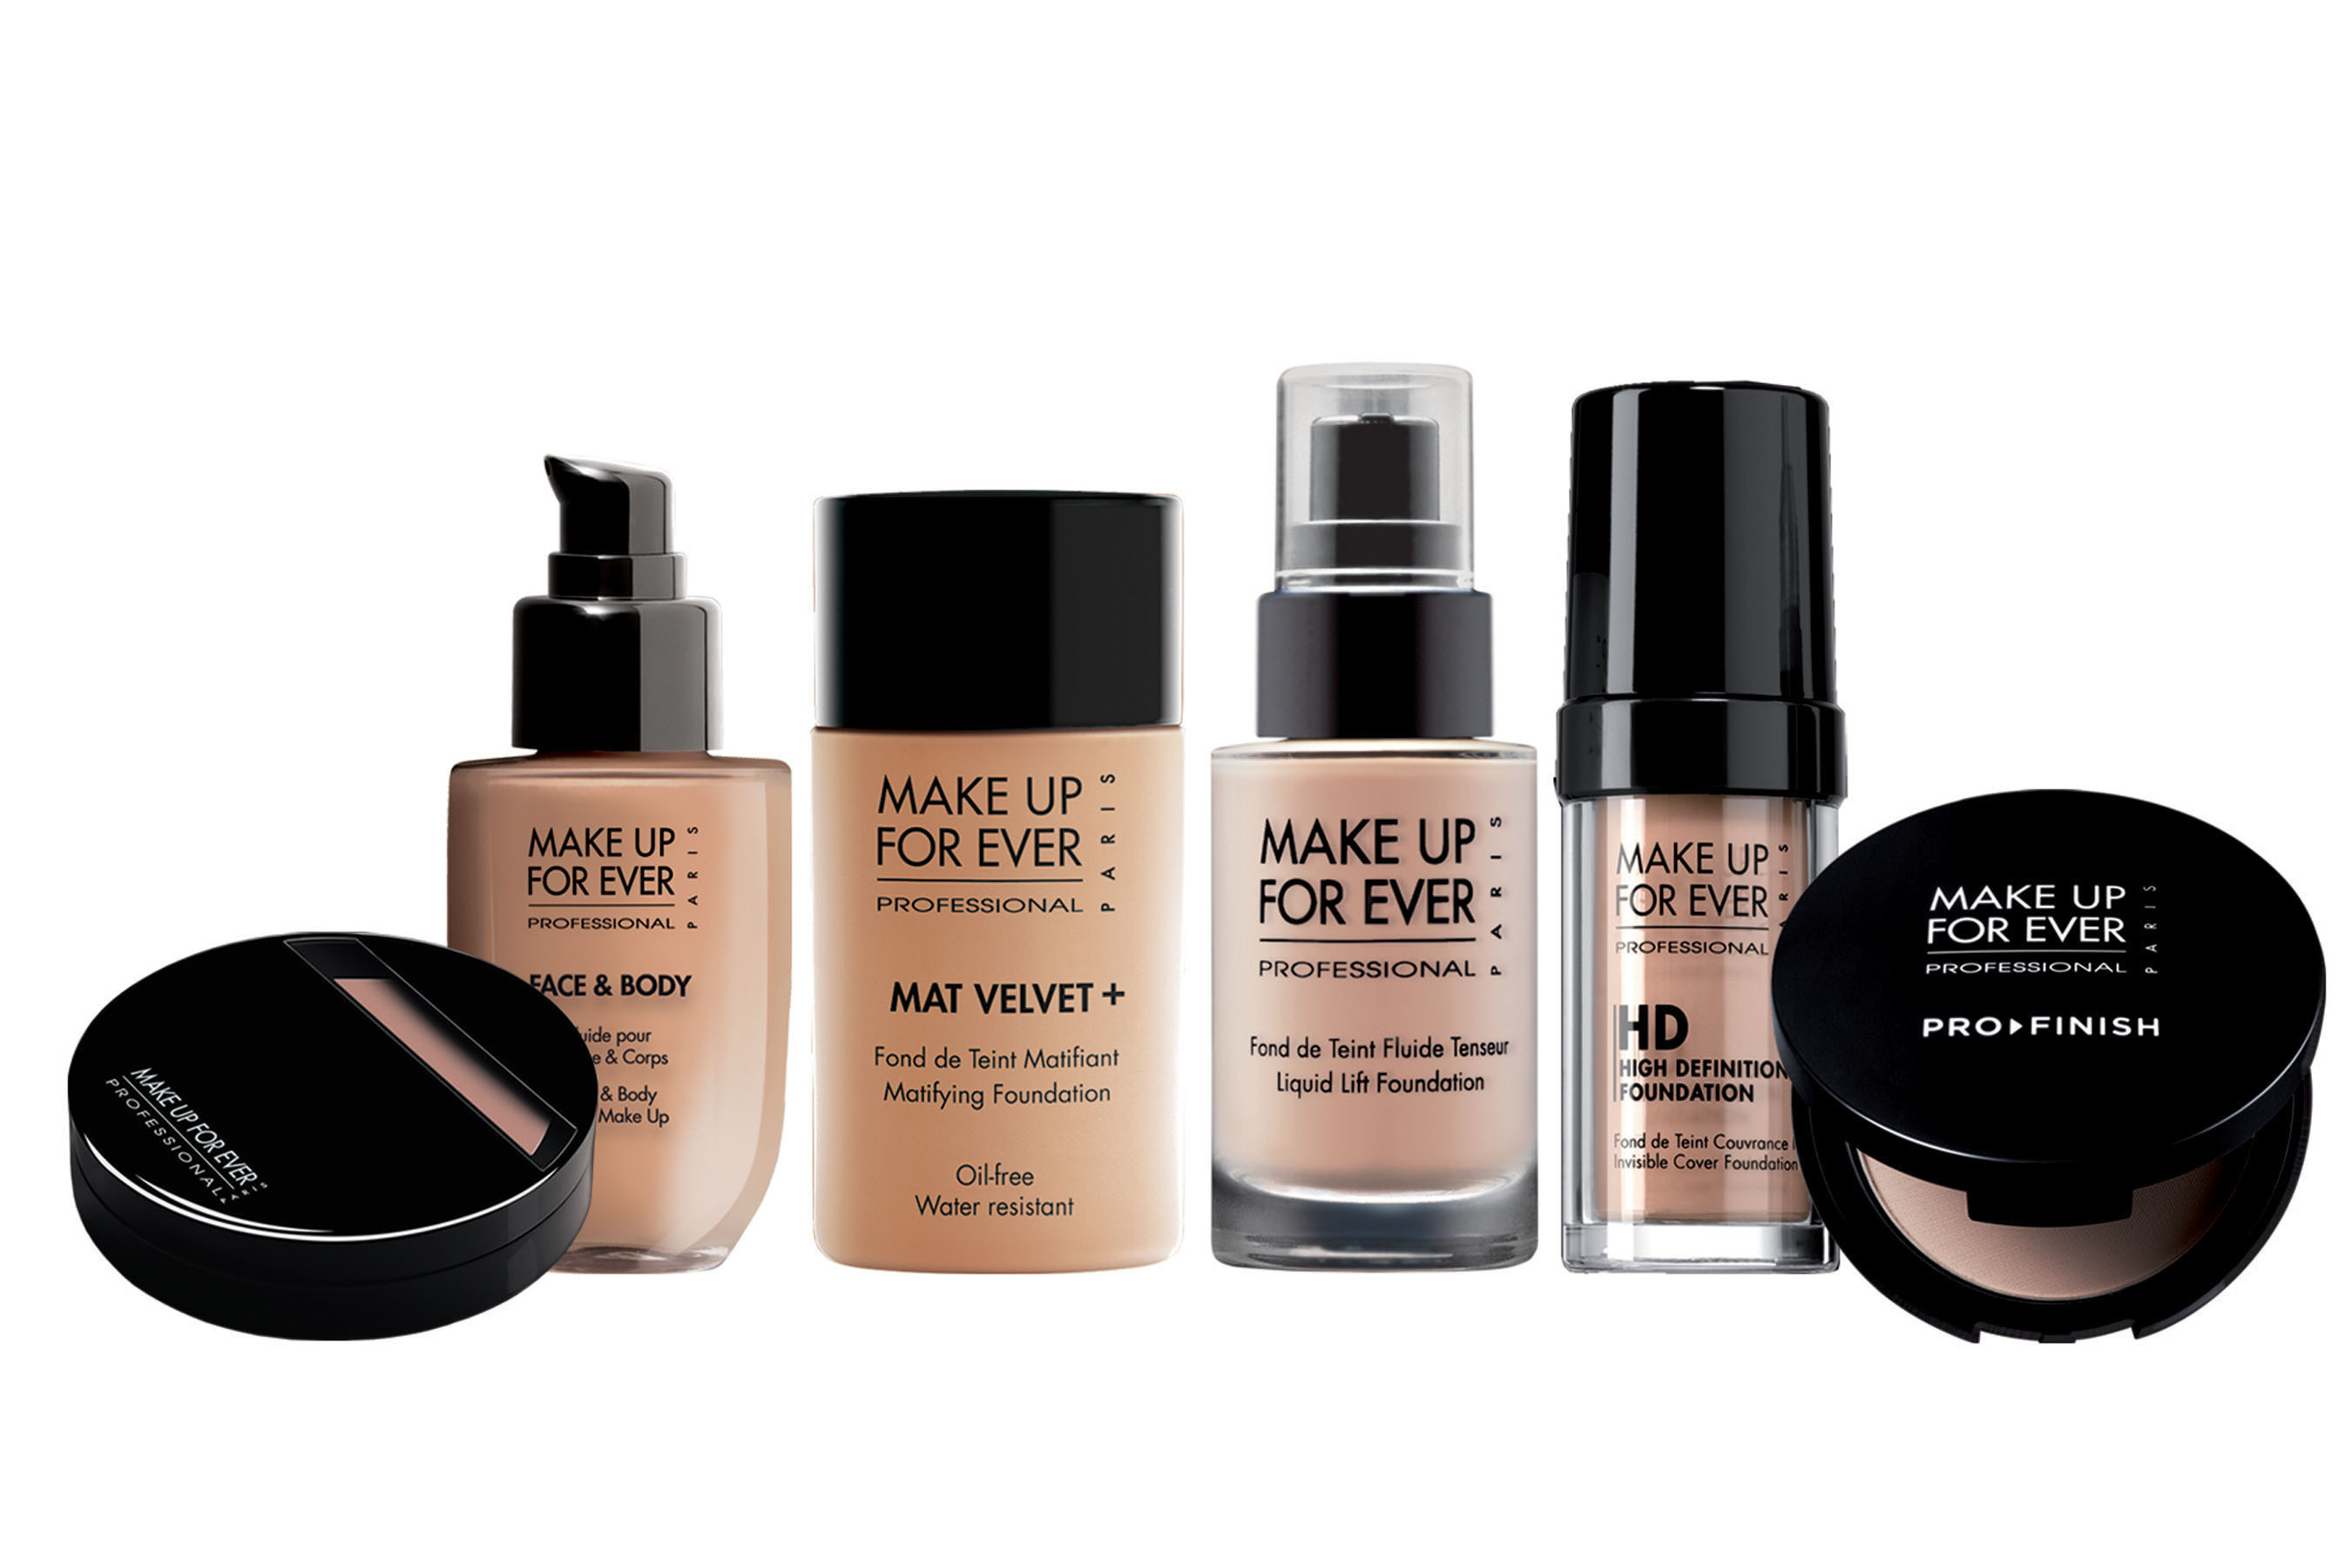 MAKE UP FOR EVER's broad range of foundations. (PRNewsFoto/MAKE UP FOR EVER) (PRNewsFoto/MAKE UP FOR EVER)